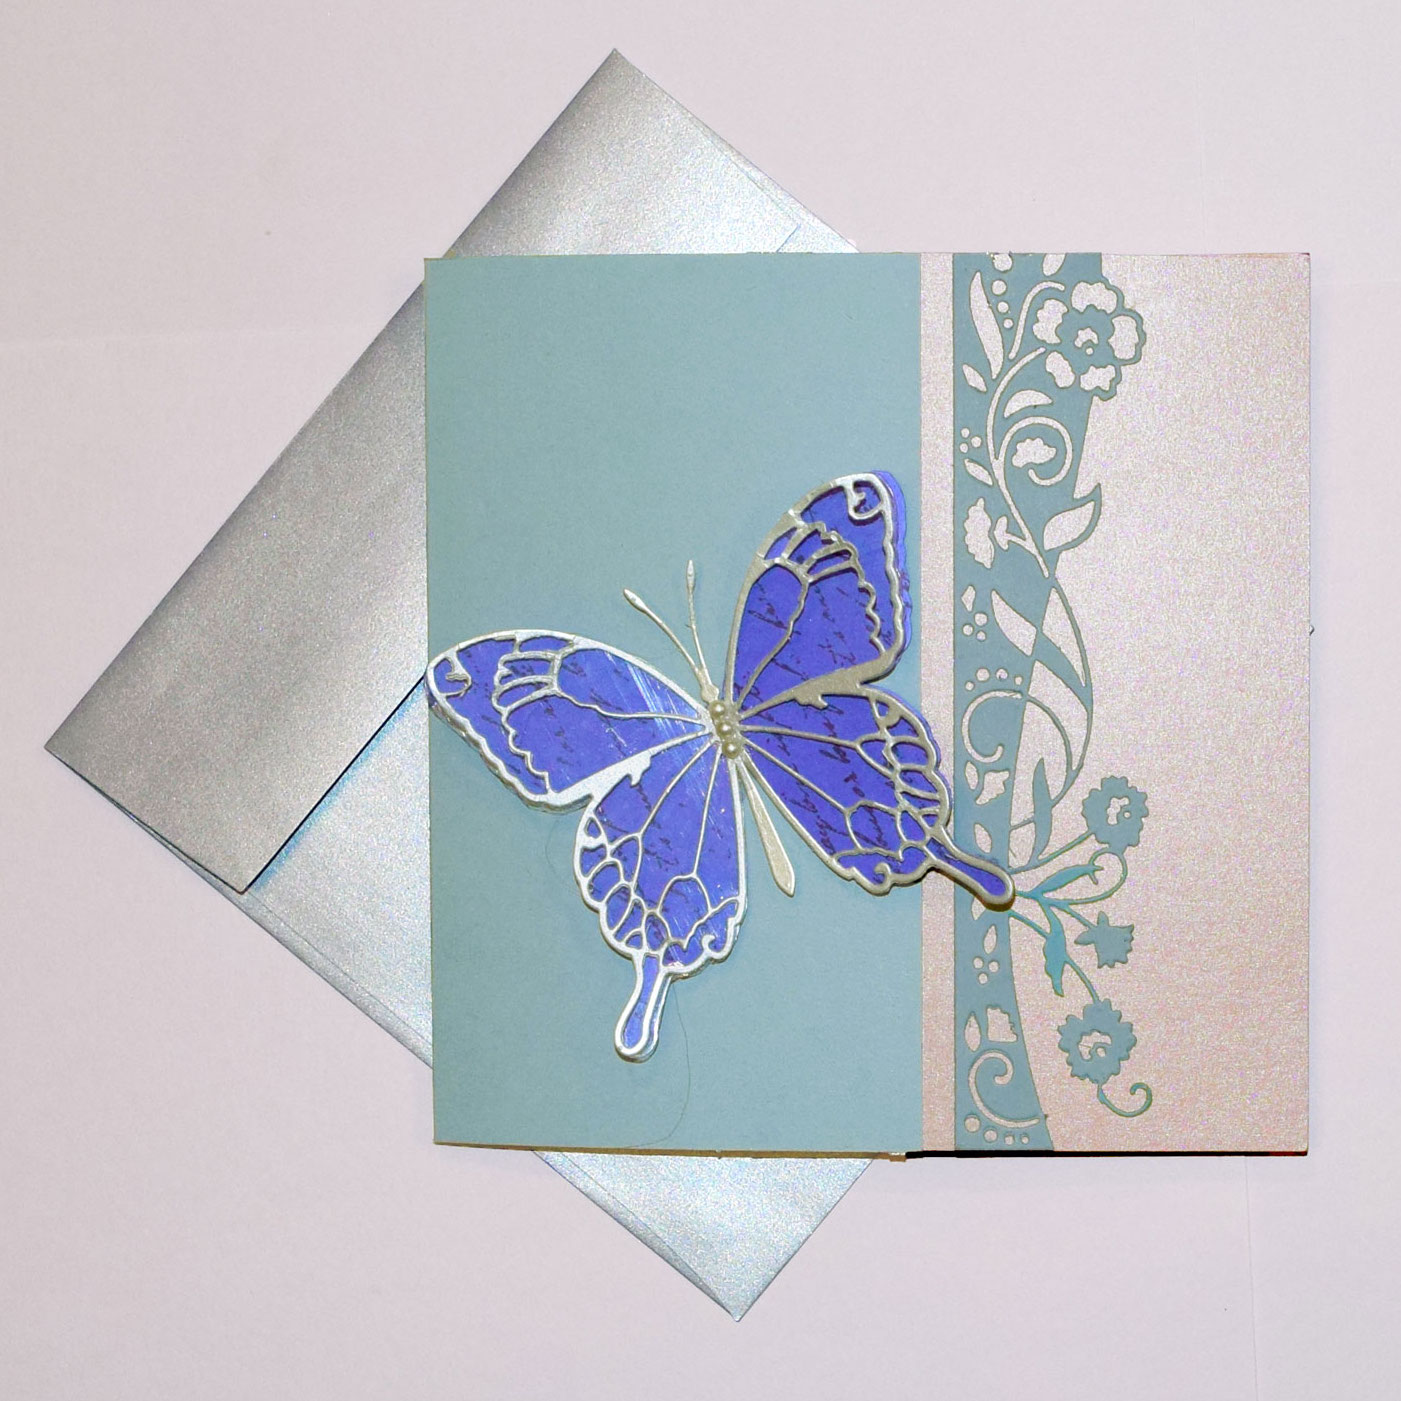 PaperPapersButterflyPopupPaperCard01  - PaperPapersButterflyPopupPaperCard01 - Butterfly Paper Popup Card